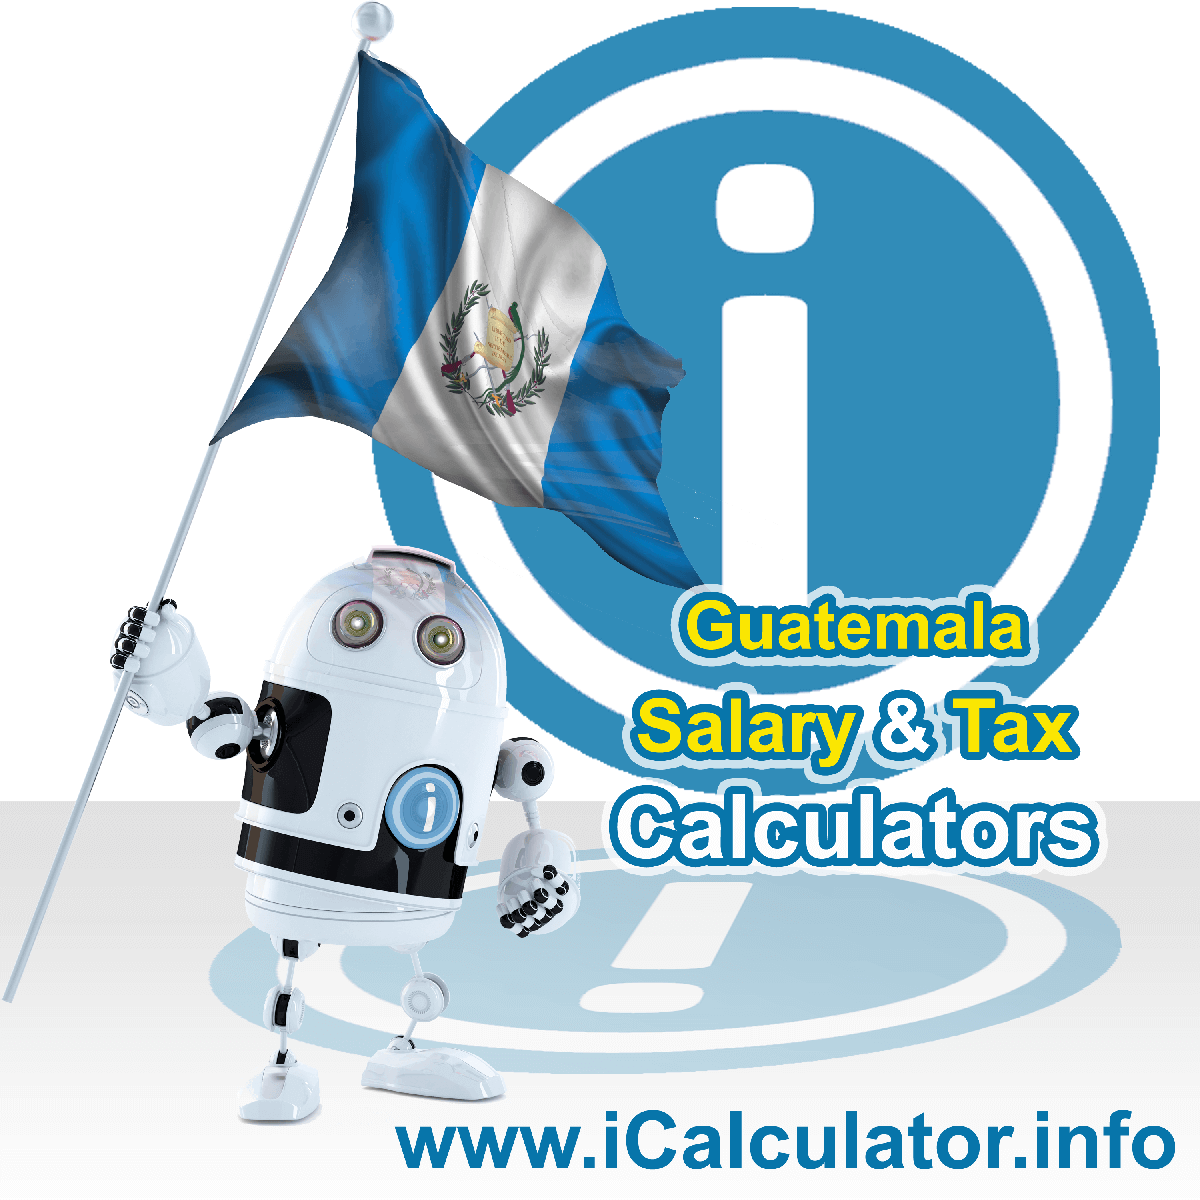 Guatemala Wage Calculator. This image shows the Guatemala flag and information relating to the tax formula for the Guatemala Tax Calculator